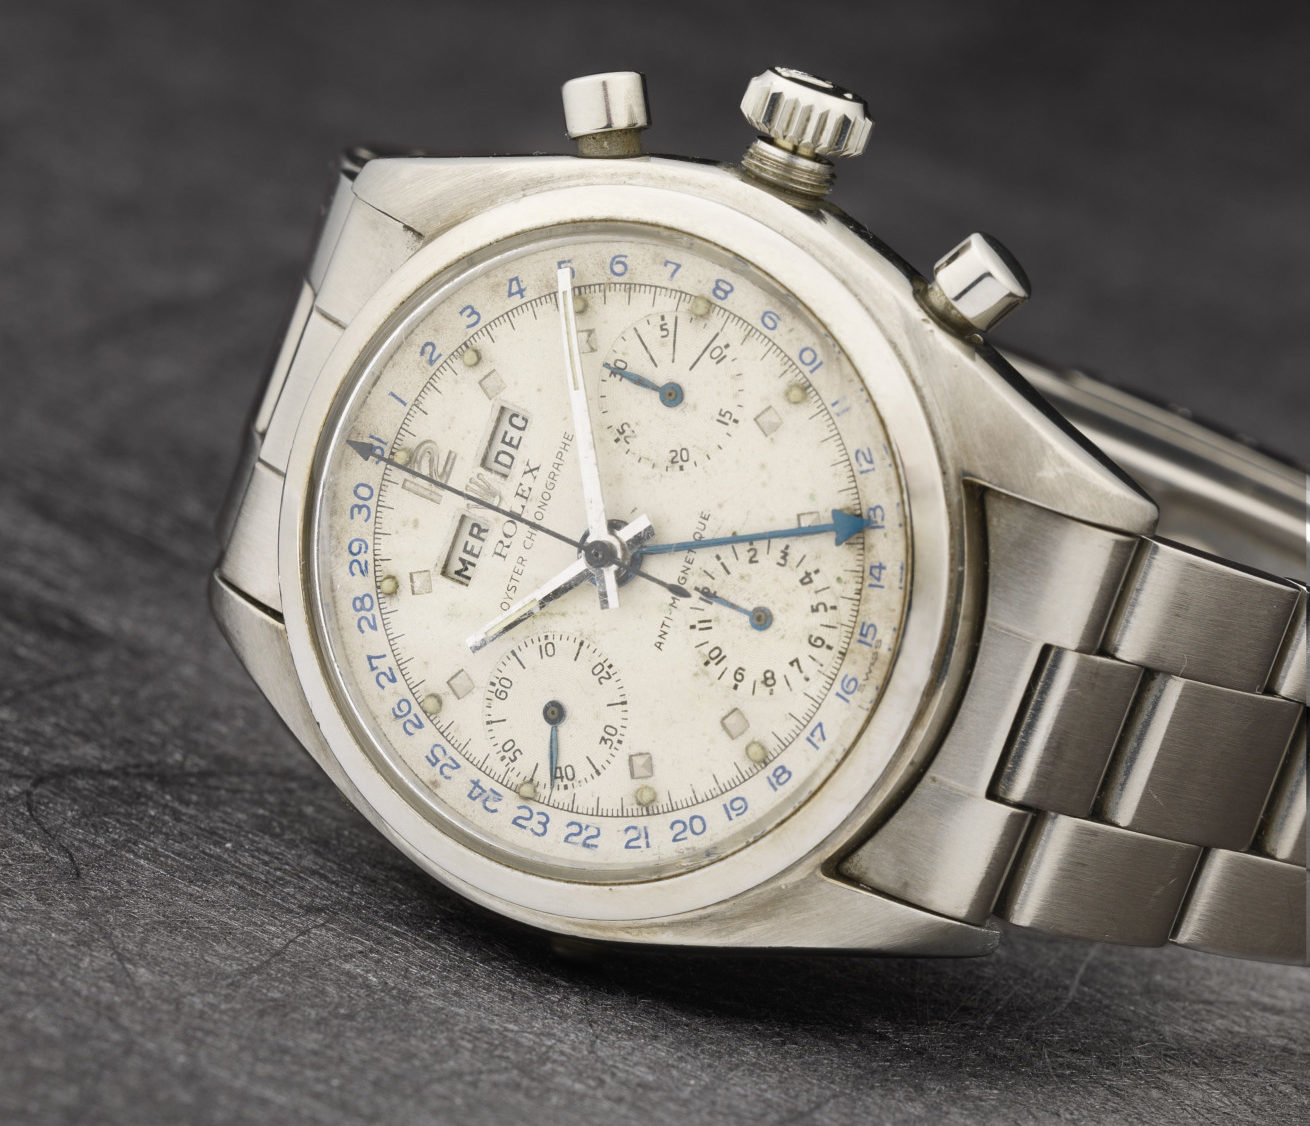 Rolex. A rare stainless steel manual wind triple calendar chronograph bracelet watch